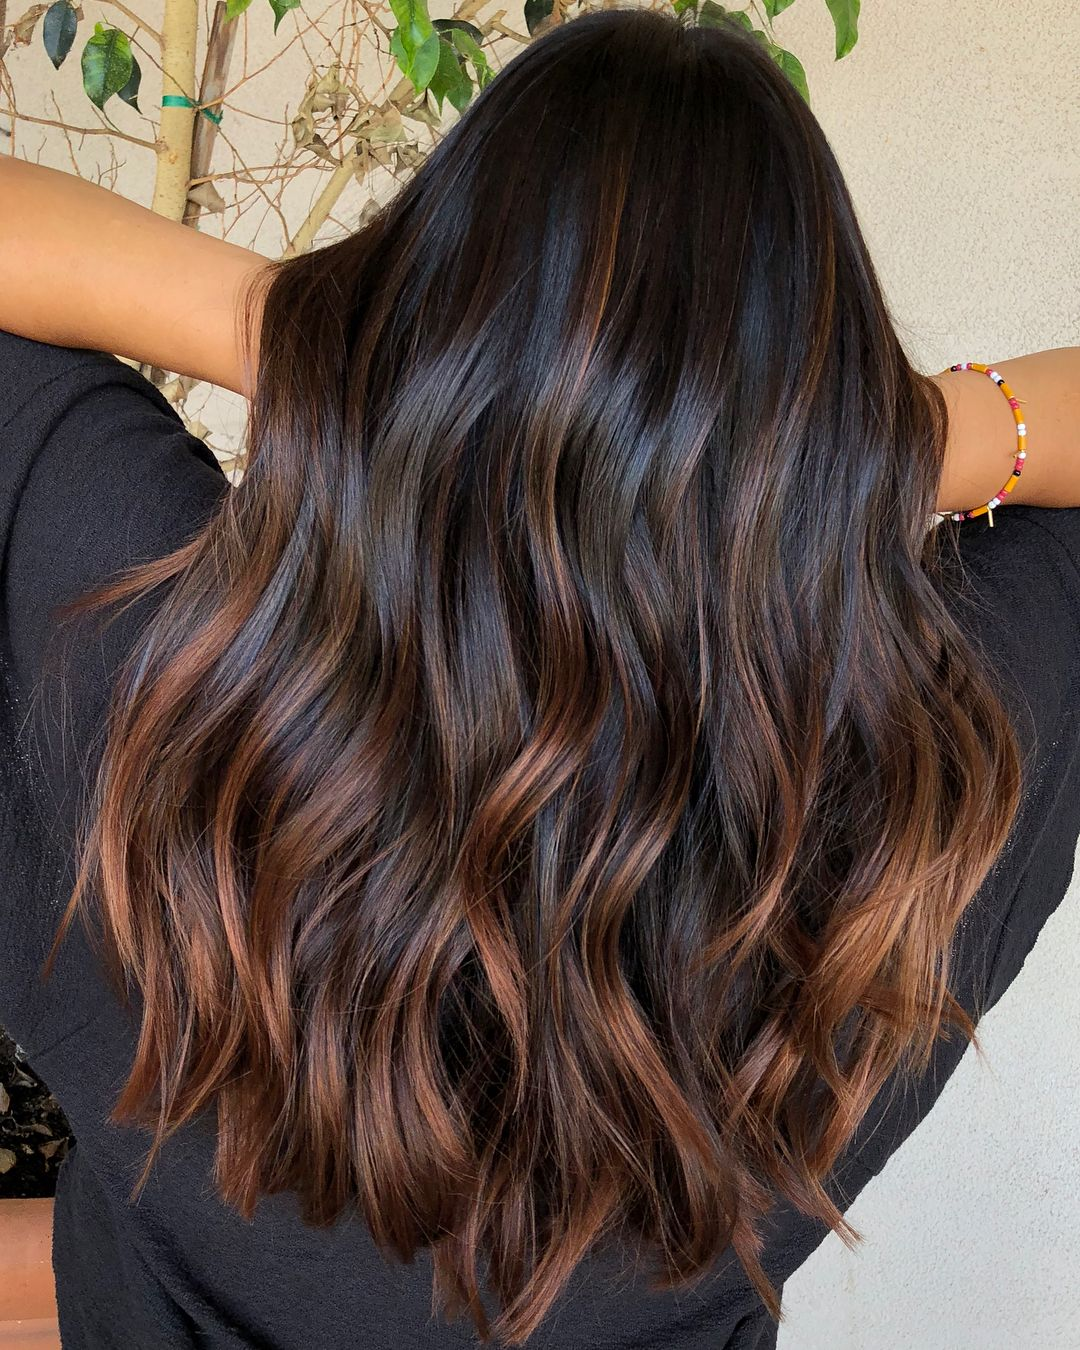 Cold Brew Hair Is Officially Trending For Fall Get More Information On The Trend And Inspo Fo Subtle Balayage Brunette Brown Hair Balayage Balayage Brunette